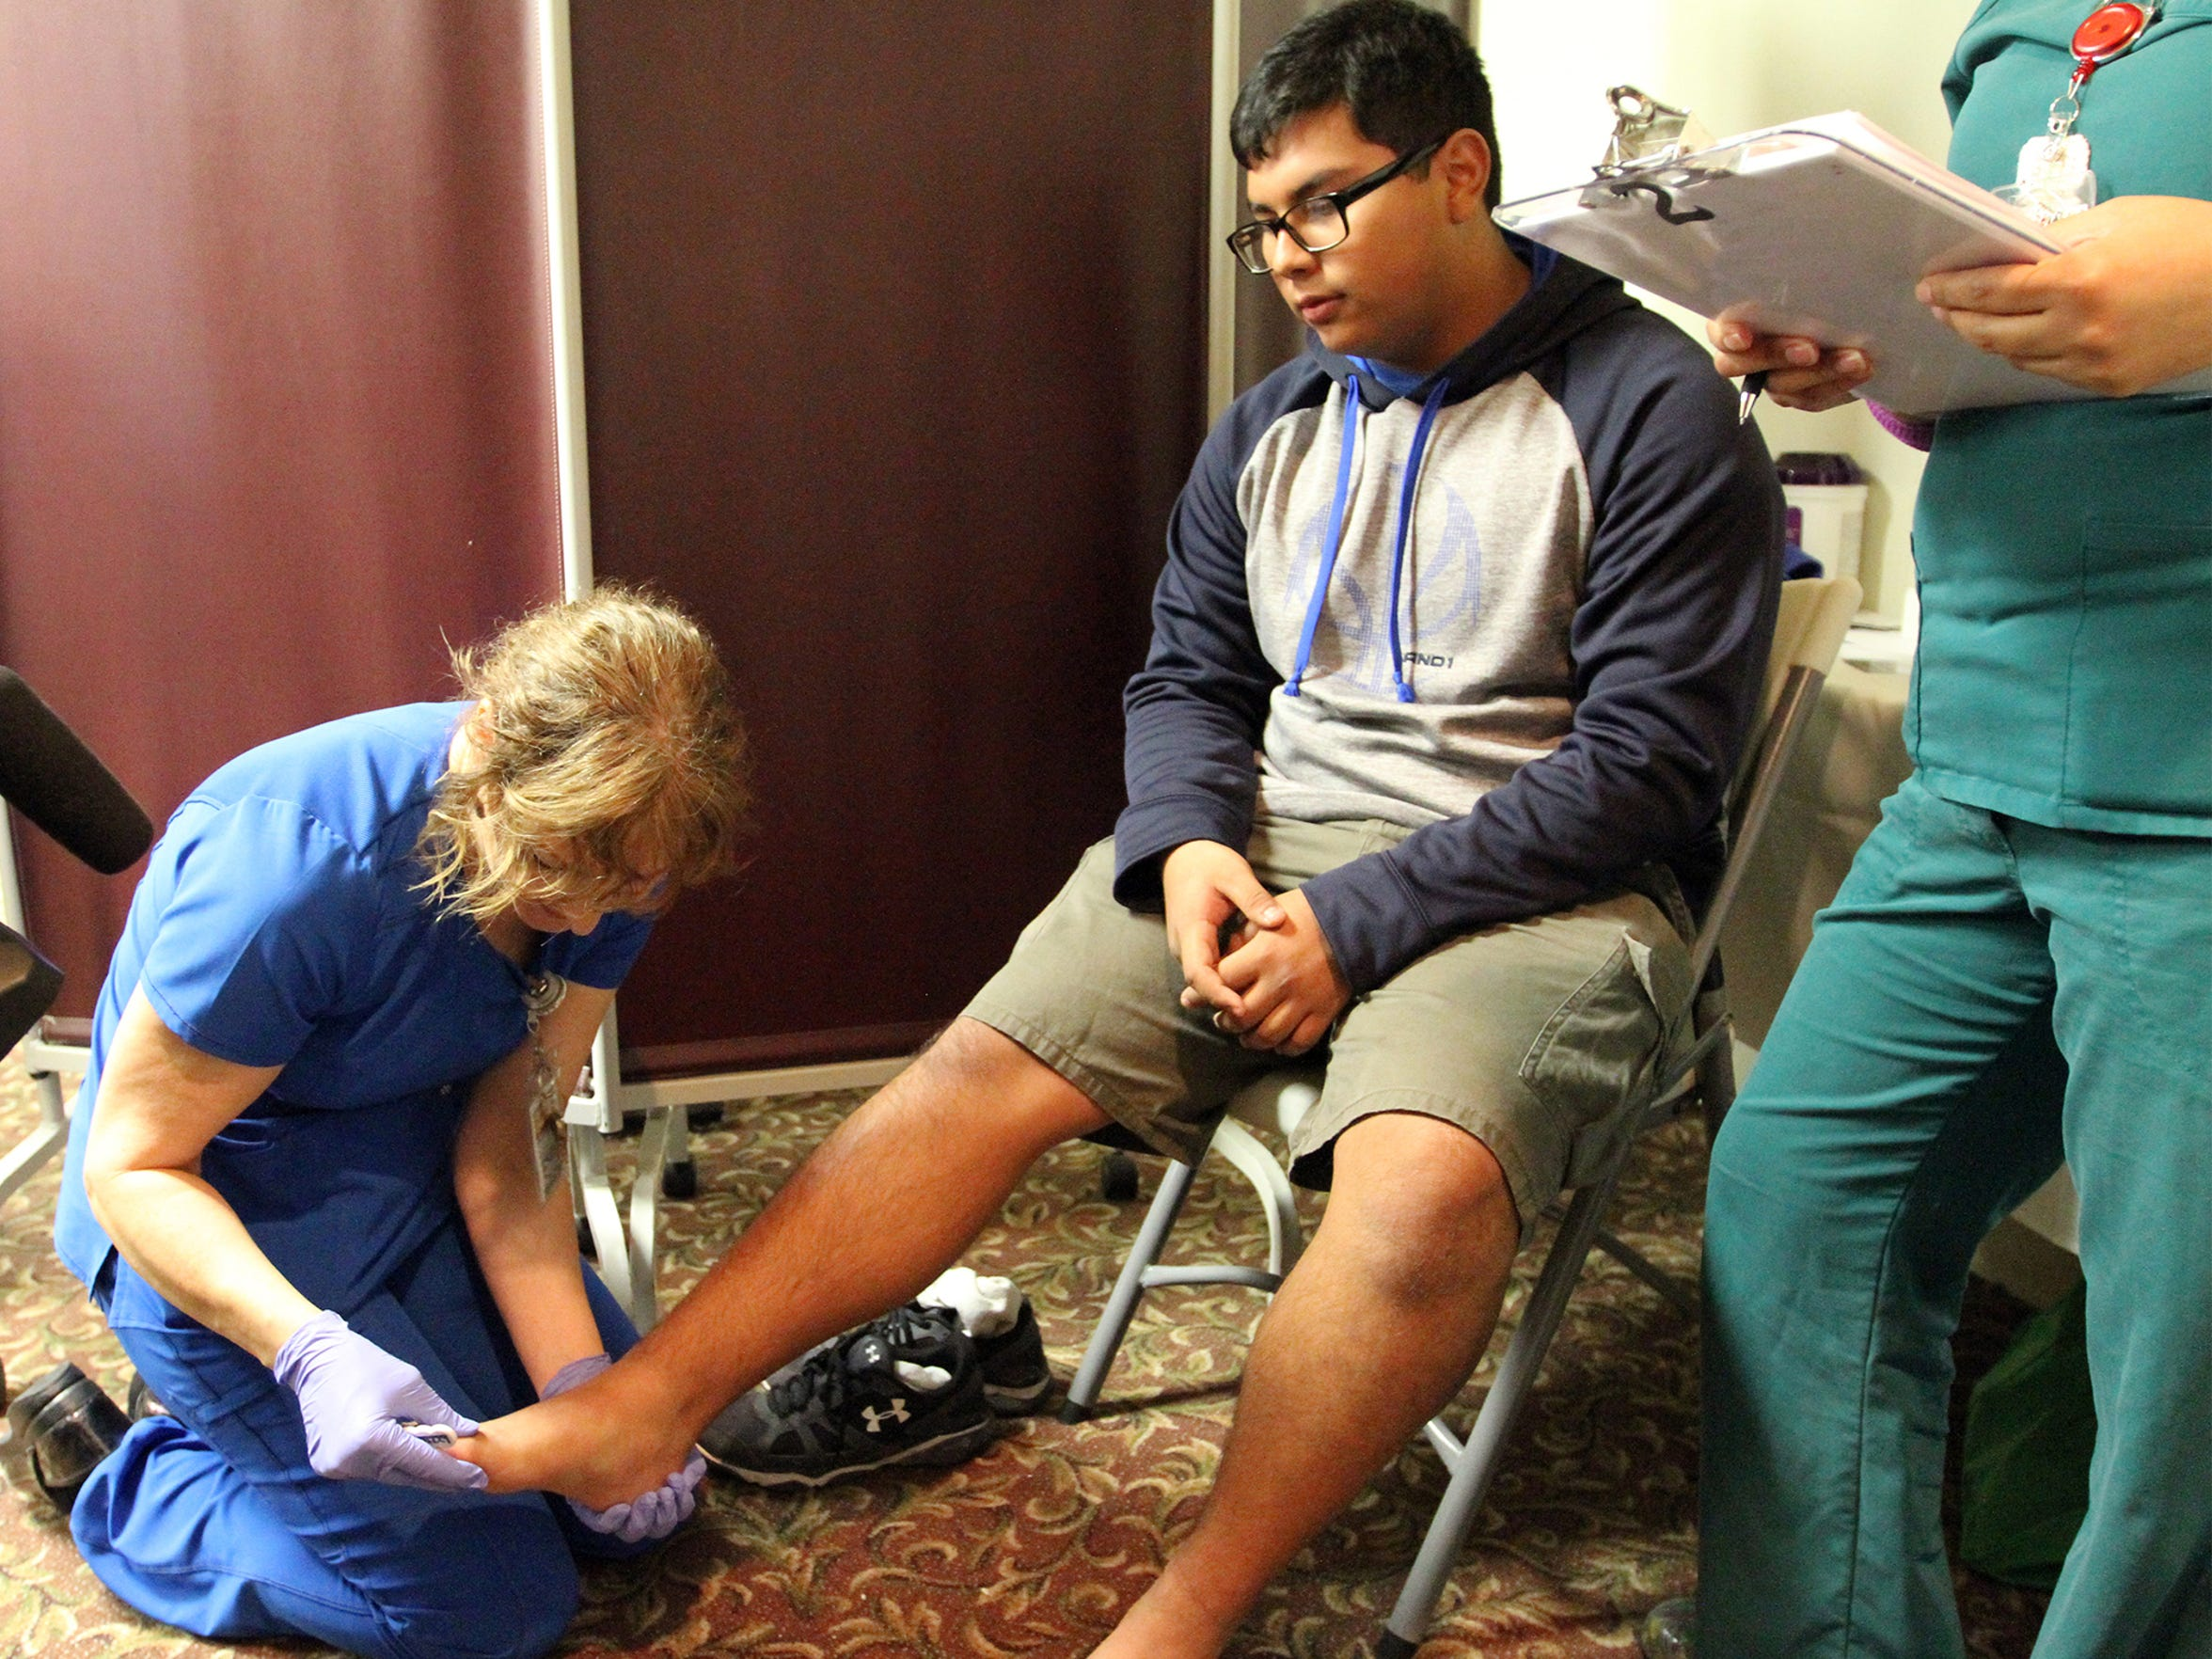 Edward Martinez, 19, of Brownsville gets his feet checked by registered nurse Heather Thiel, left, during his first diabetes screening during a free public health screening at Valley Baptist Hospital in Brownsville.